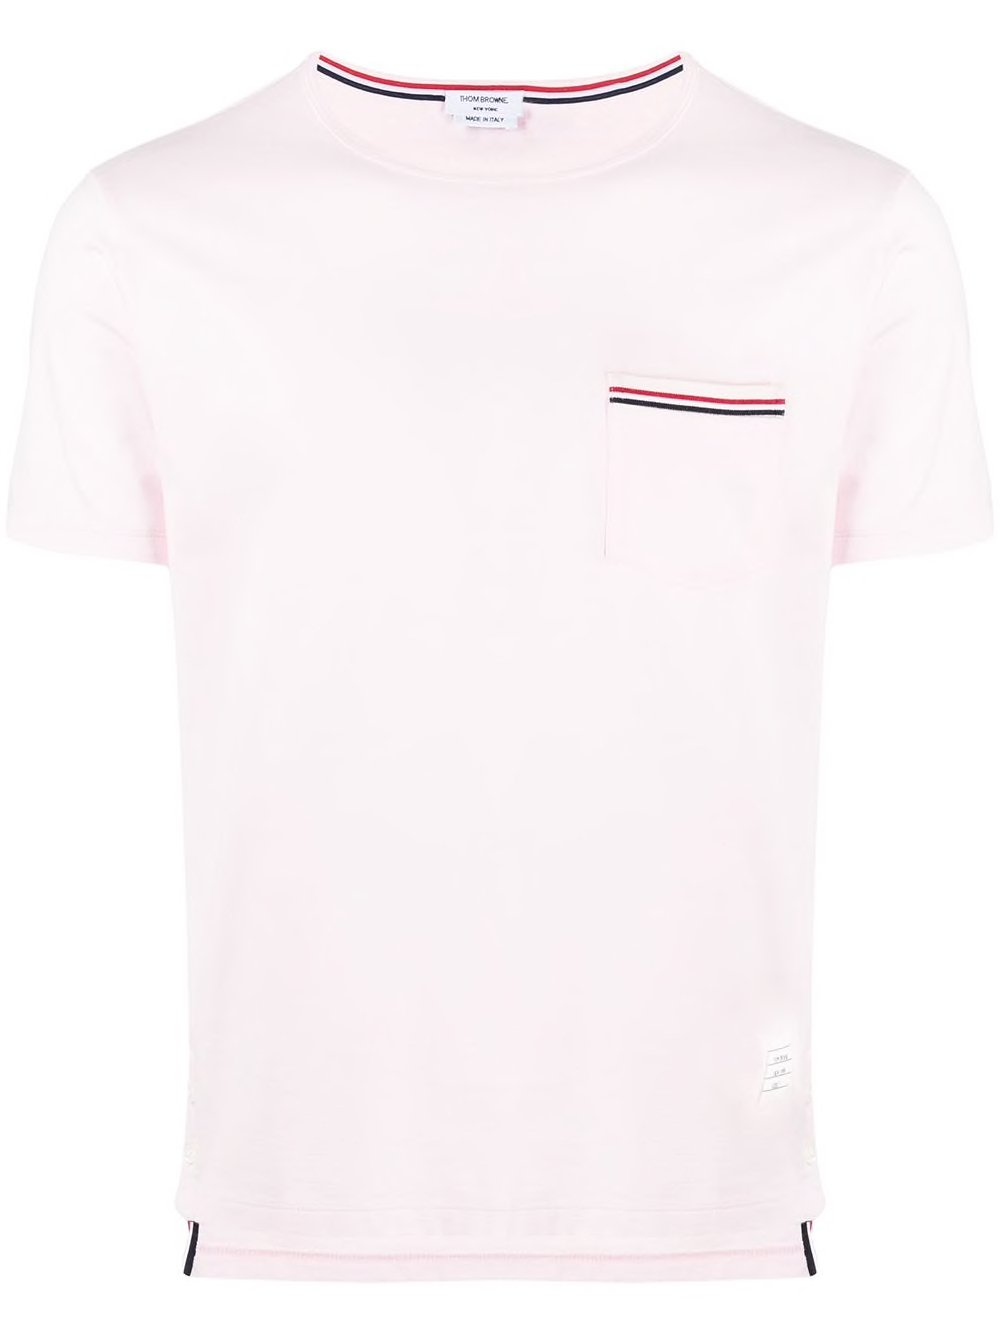 Pink Short Sleeve Pocket T-Shirt